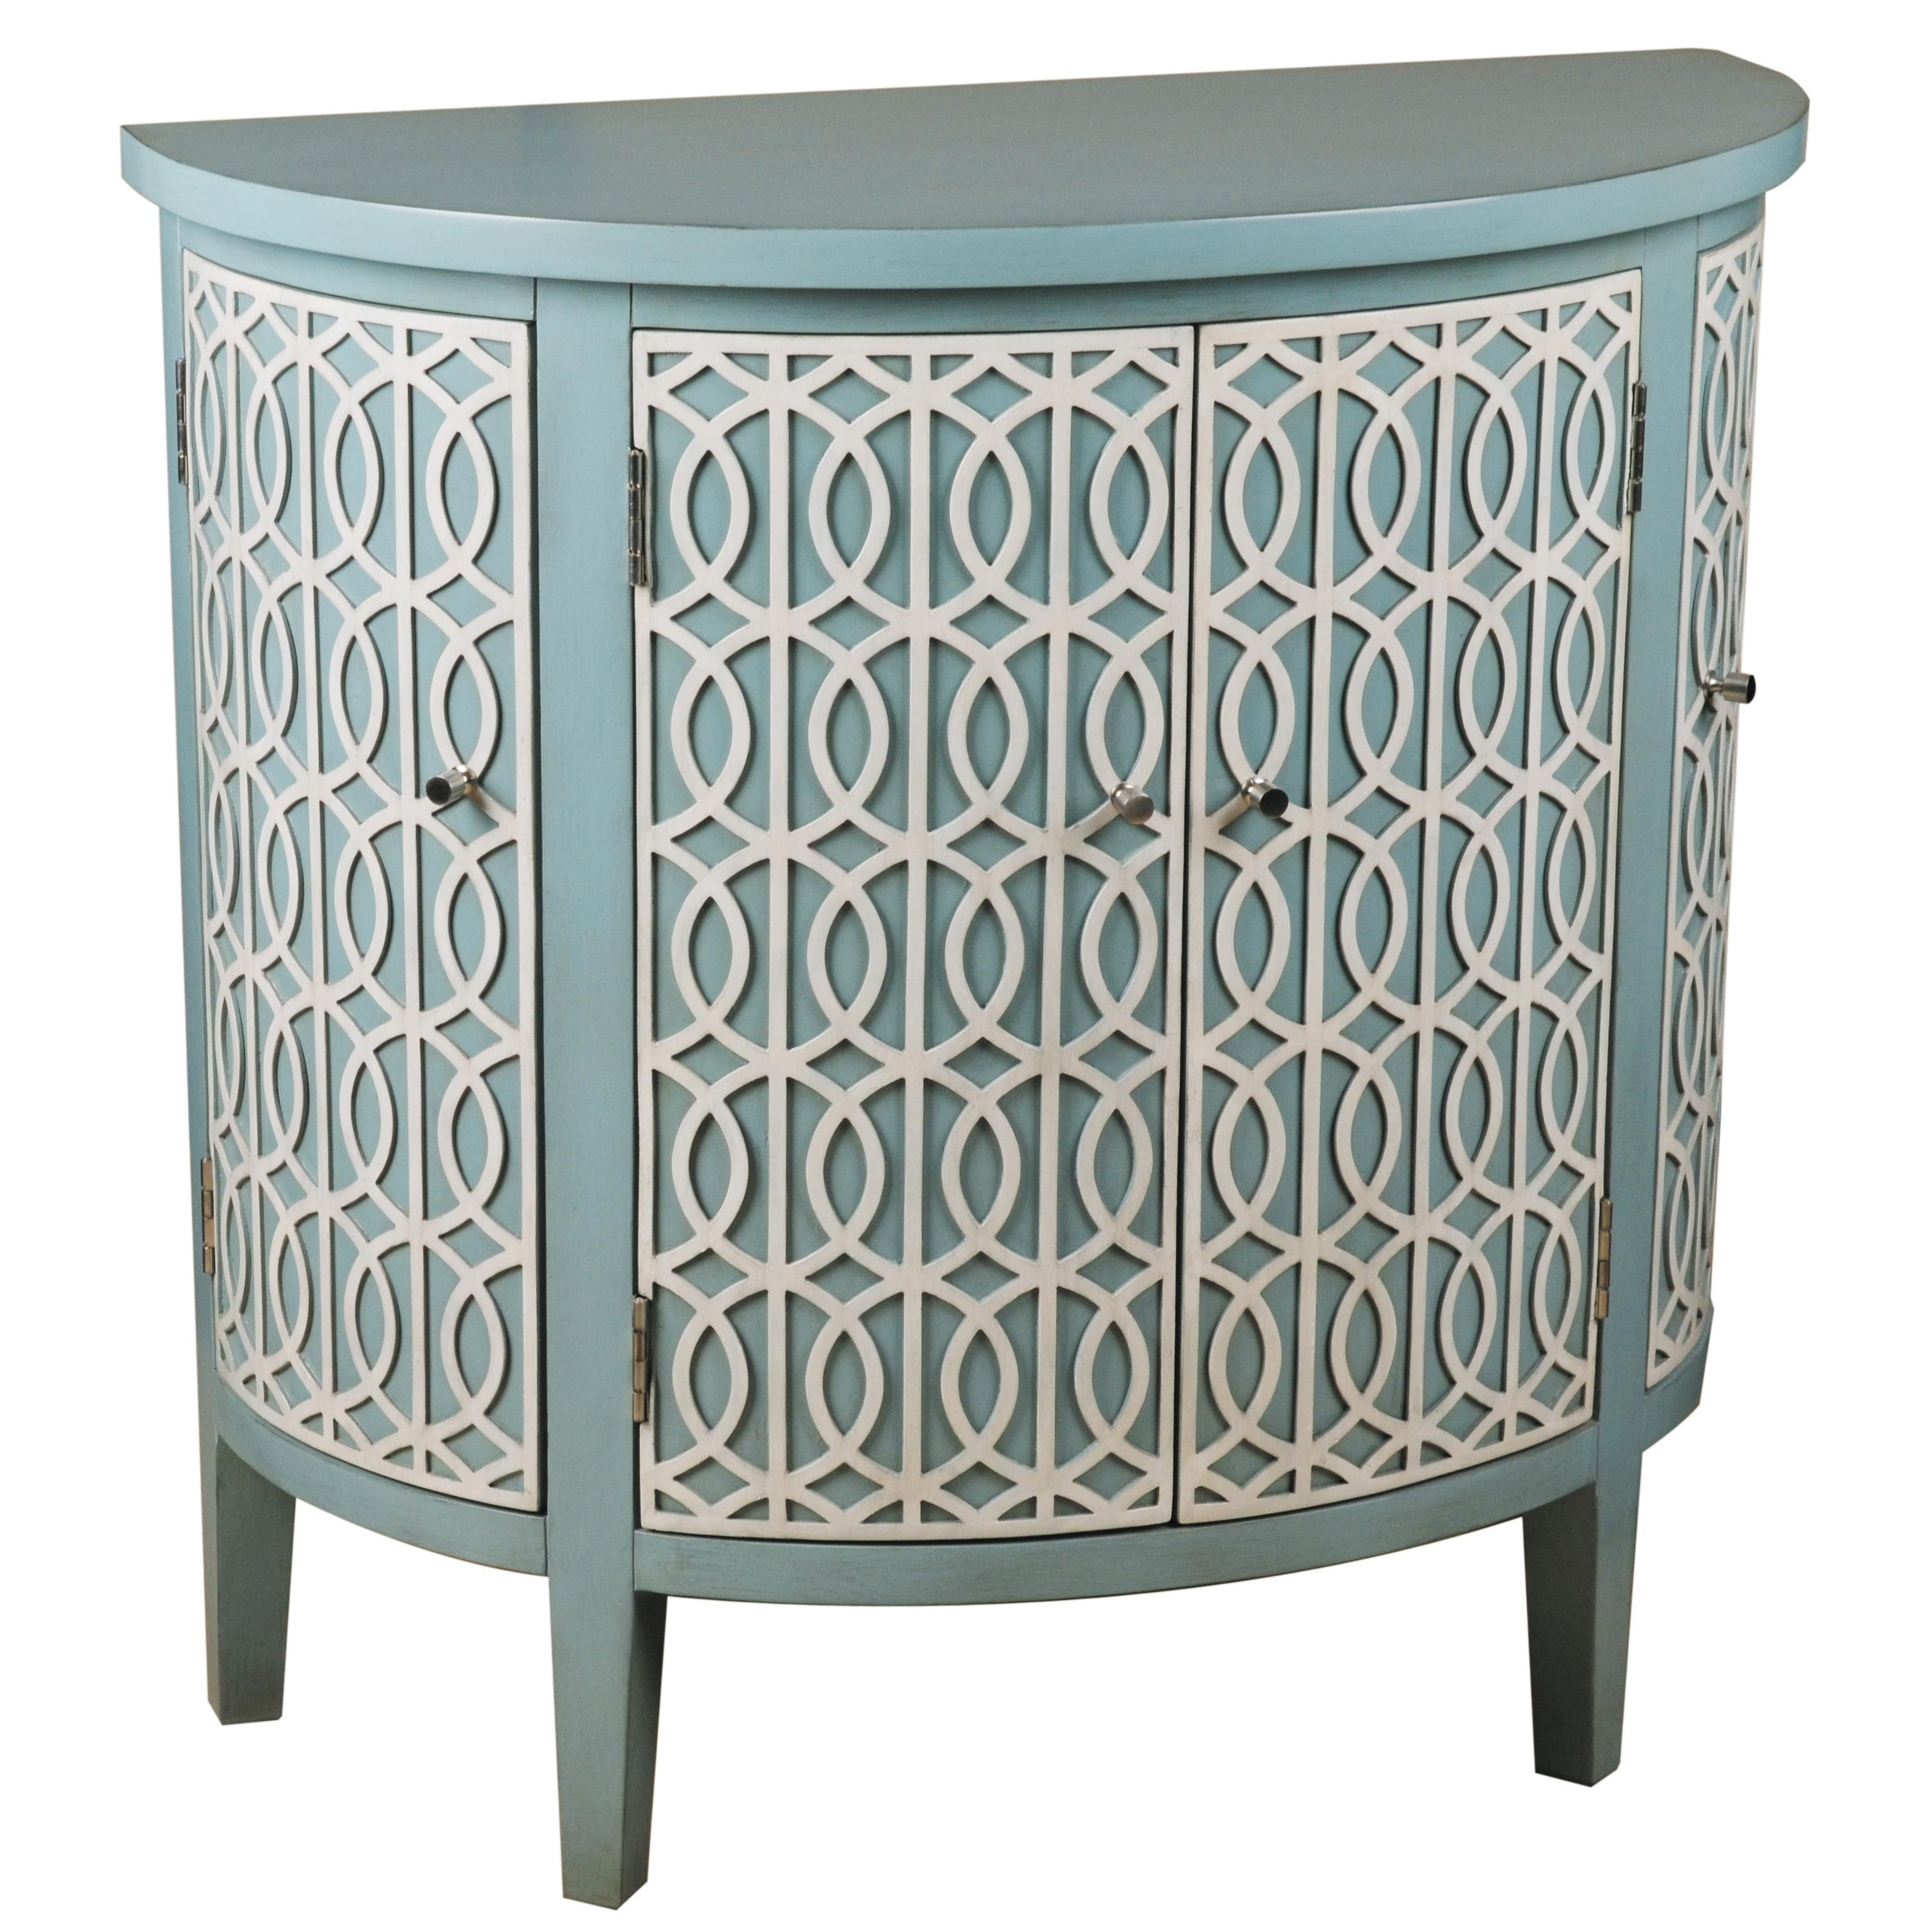 Pulaski Furniture Accents Chest - Item Number: 597110